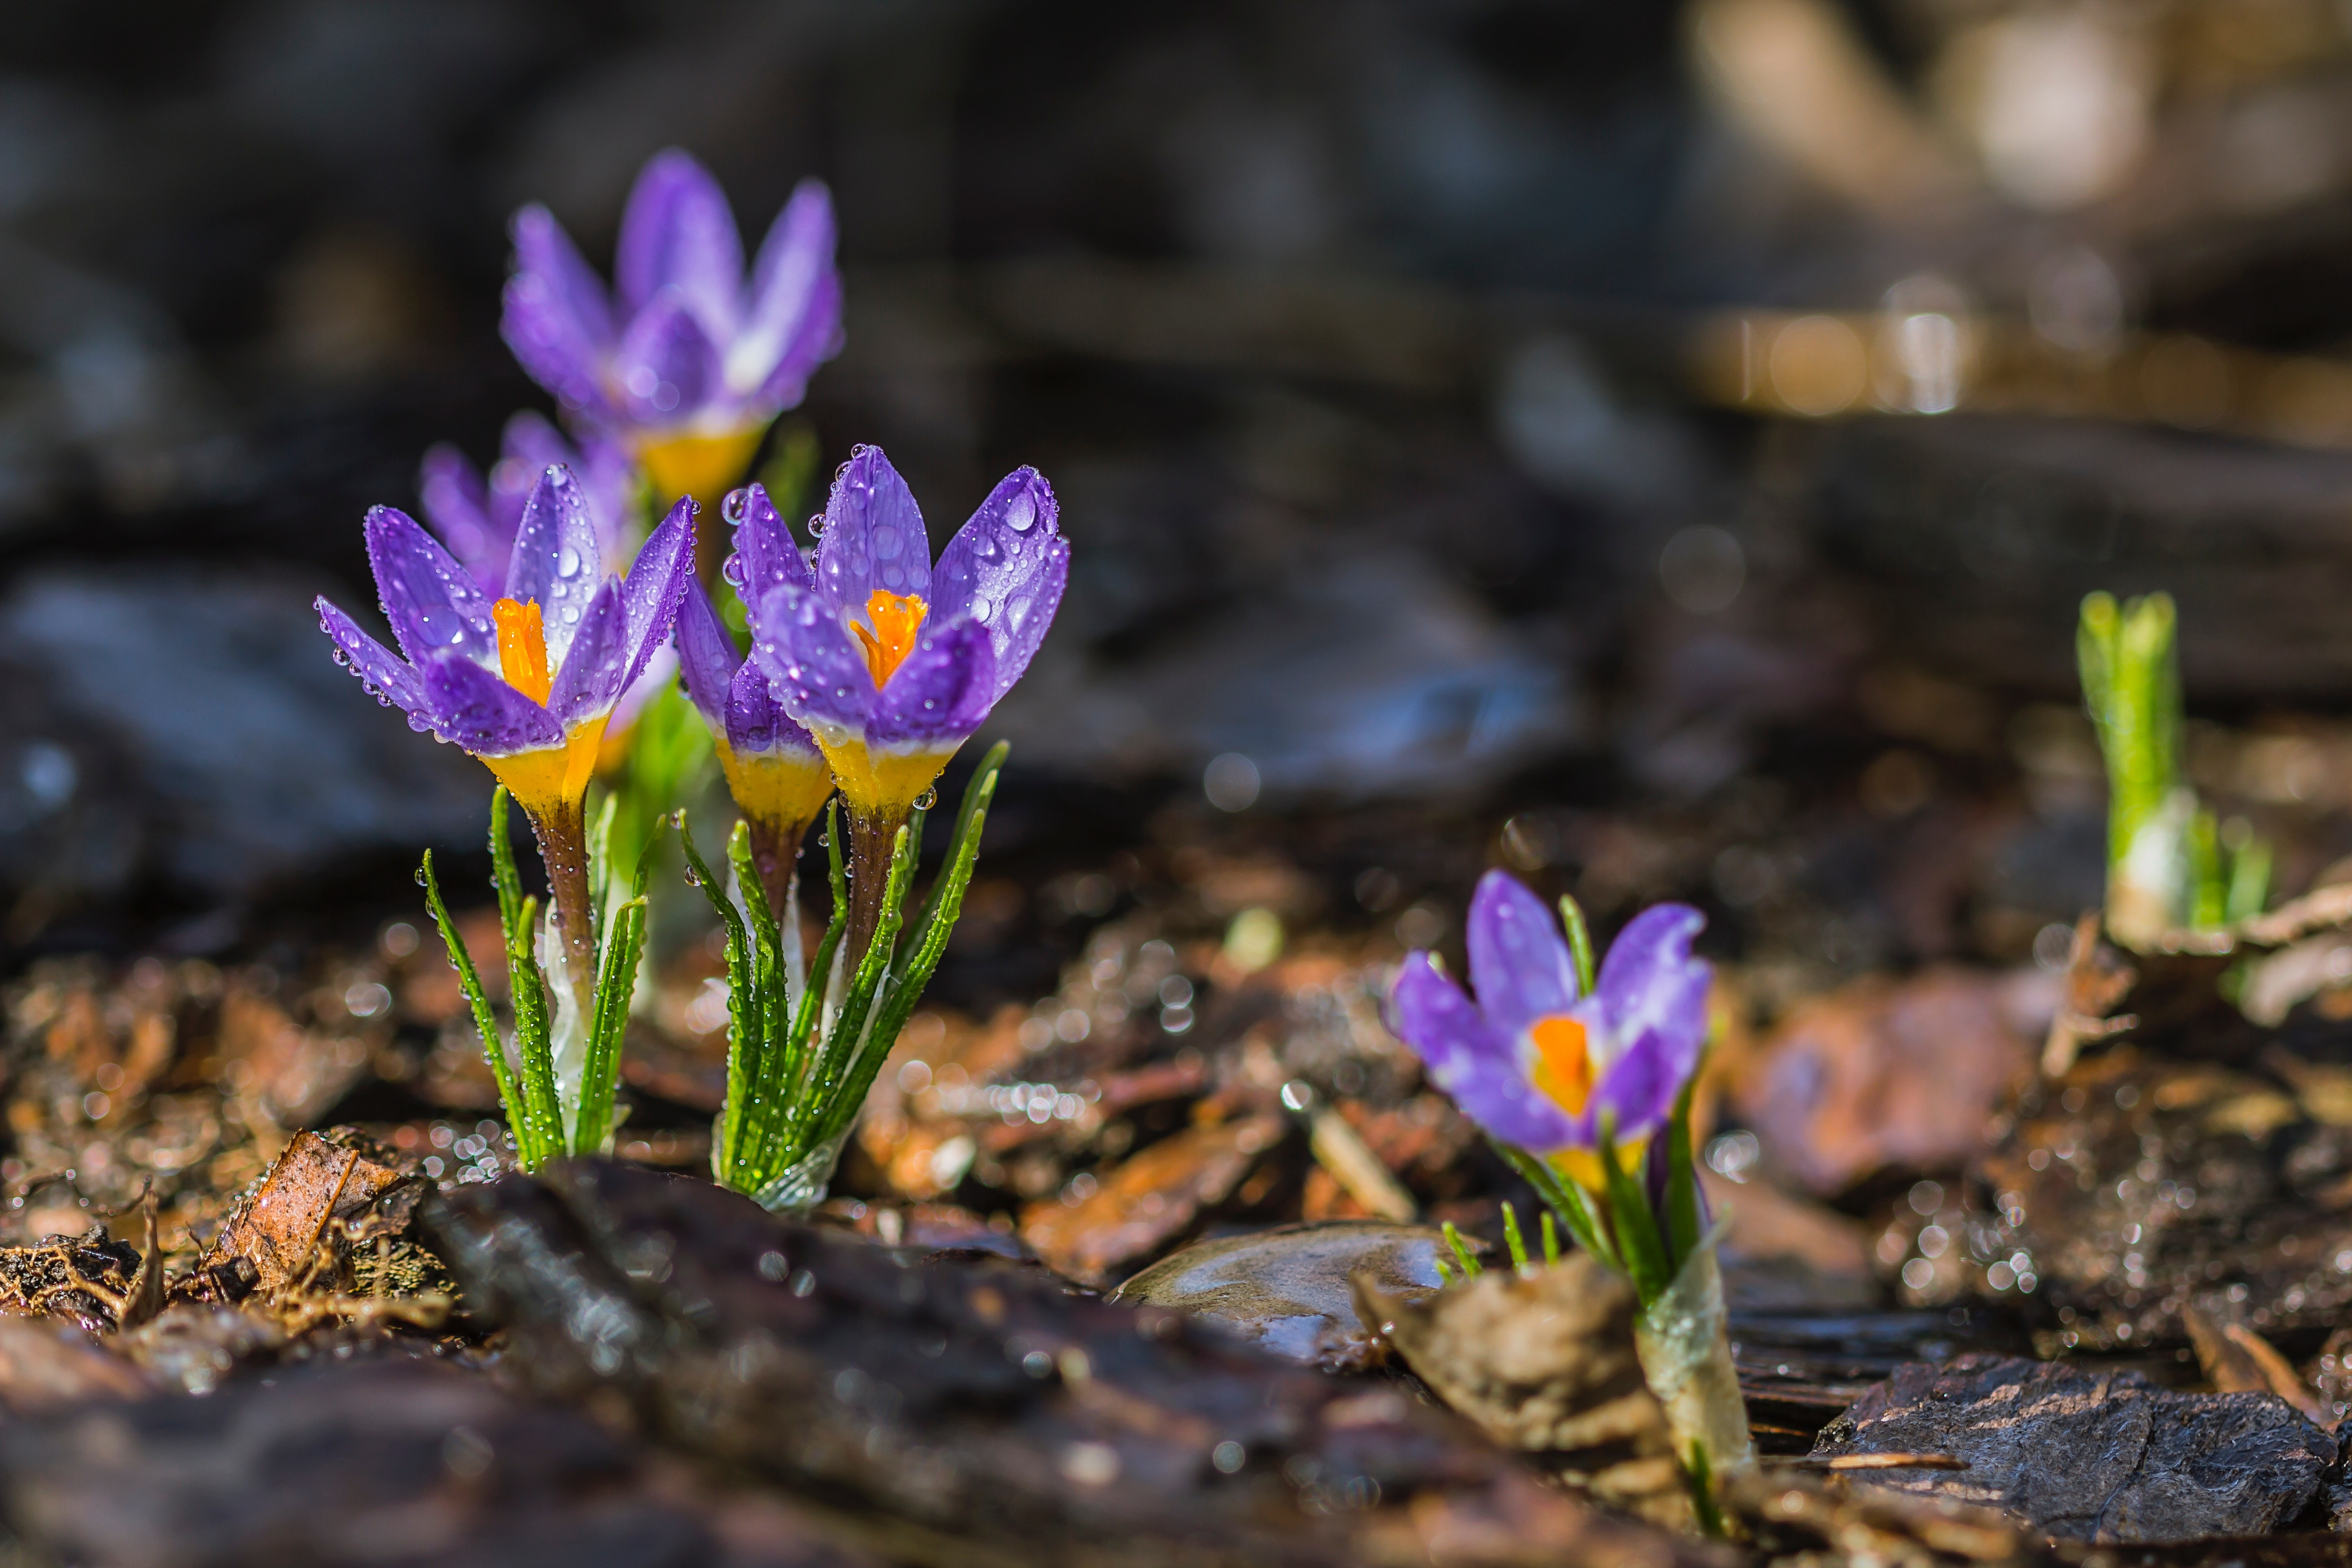 bloom-blossom-crocus-156203